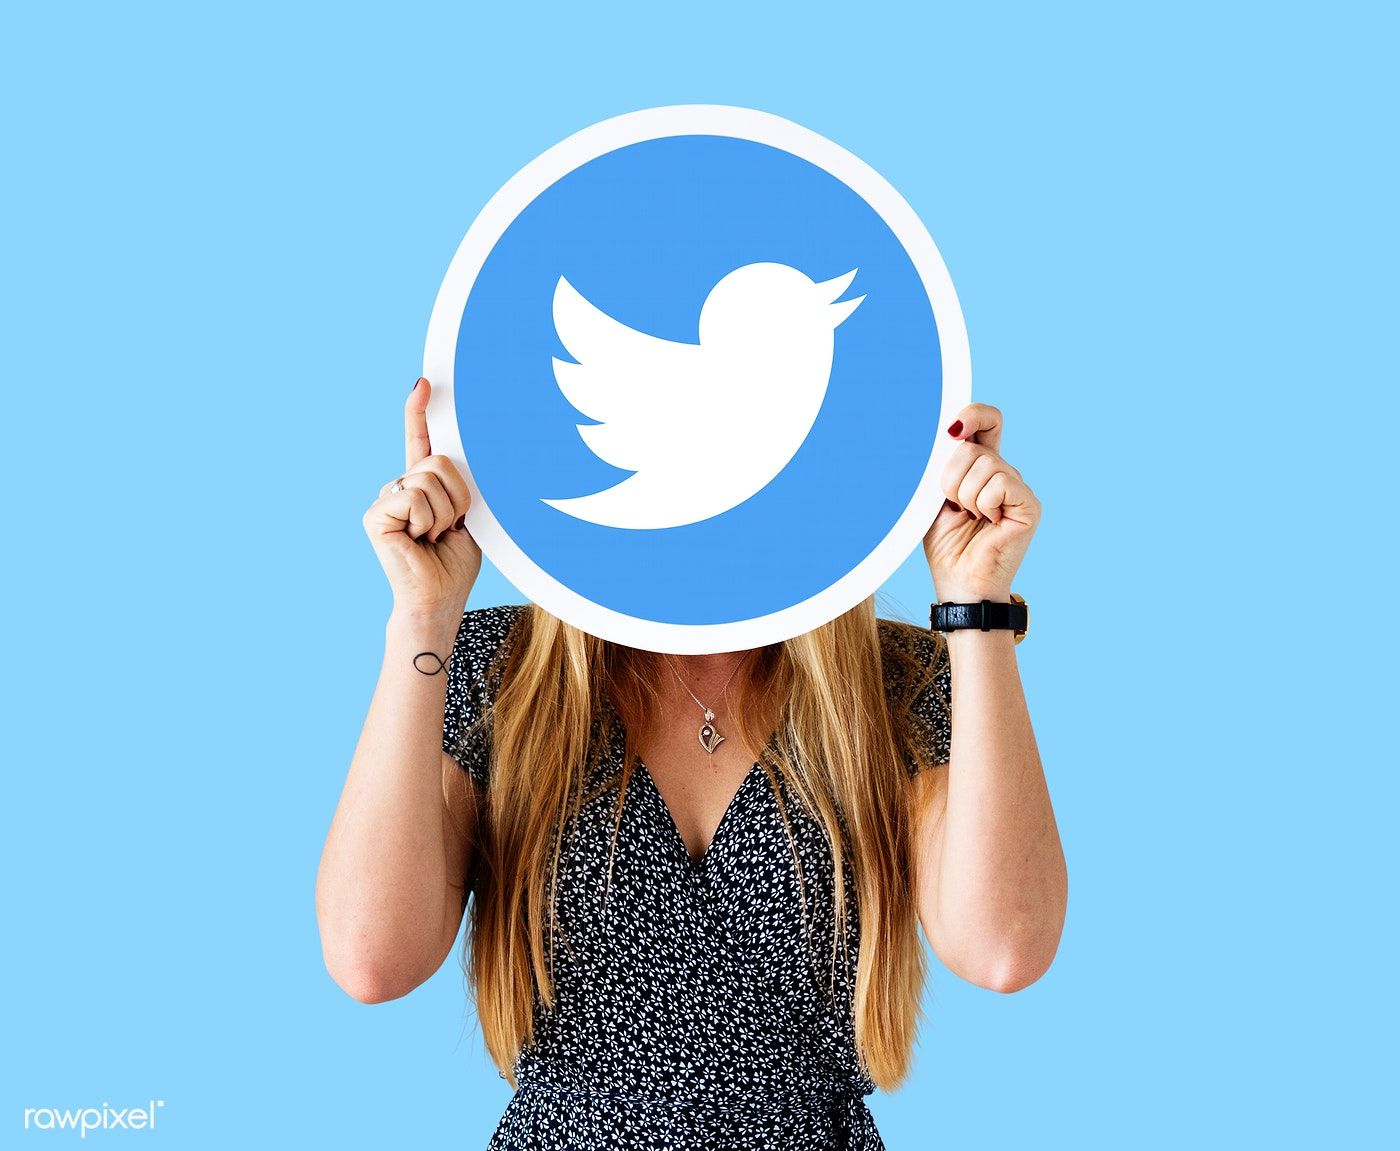 Woman showing a Twitter icon free image by